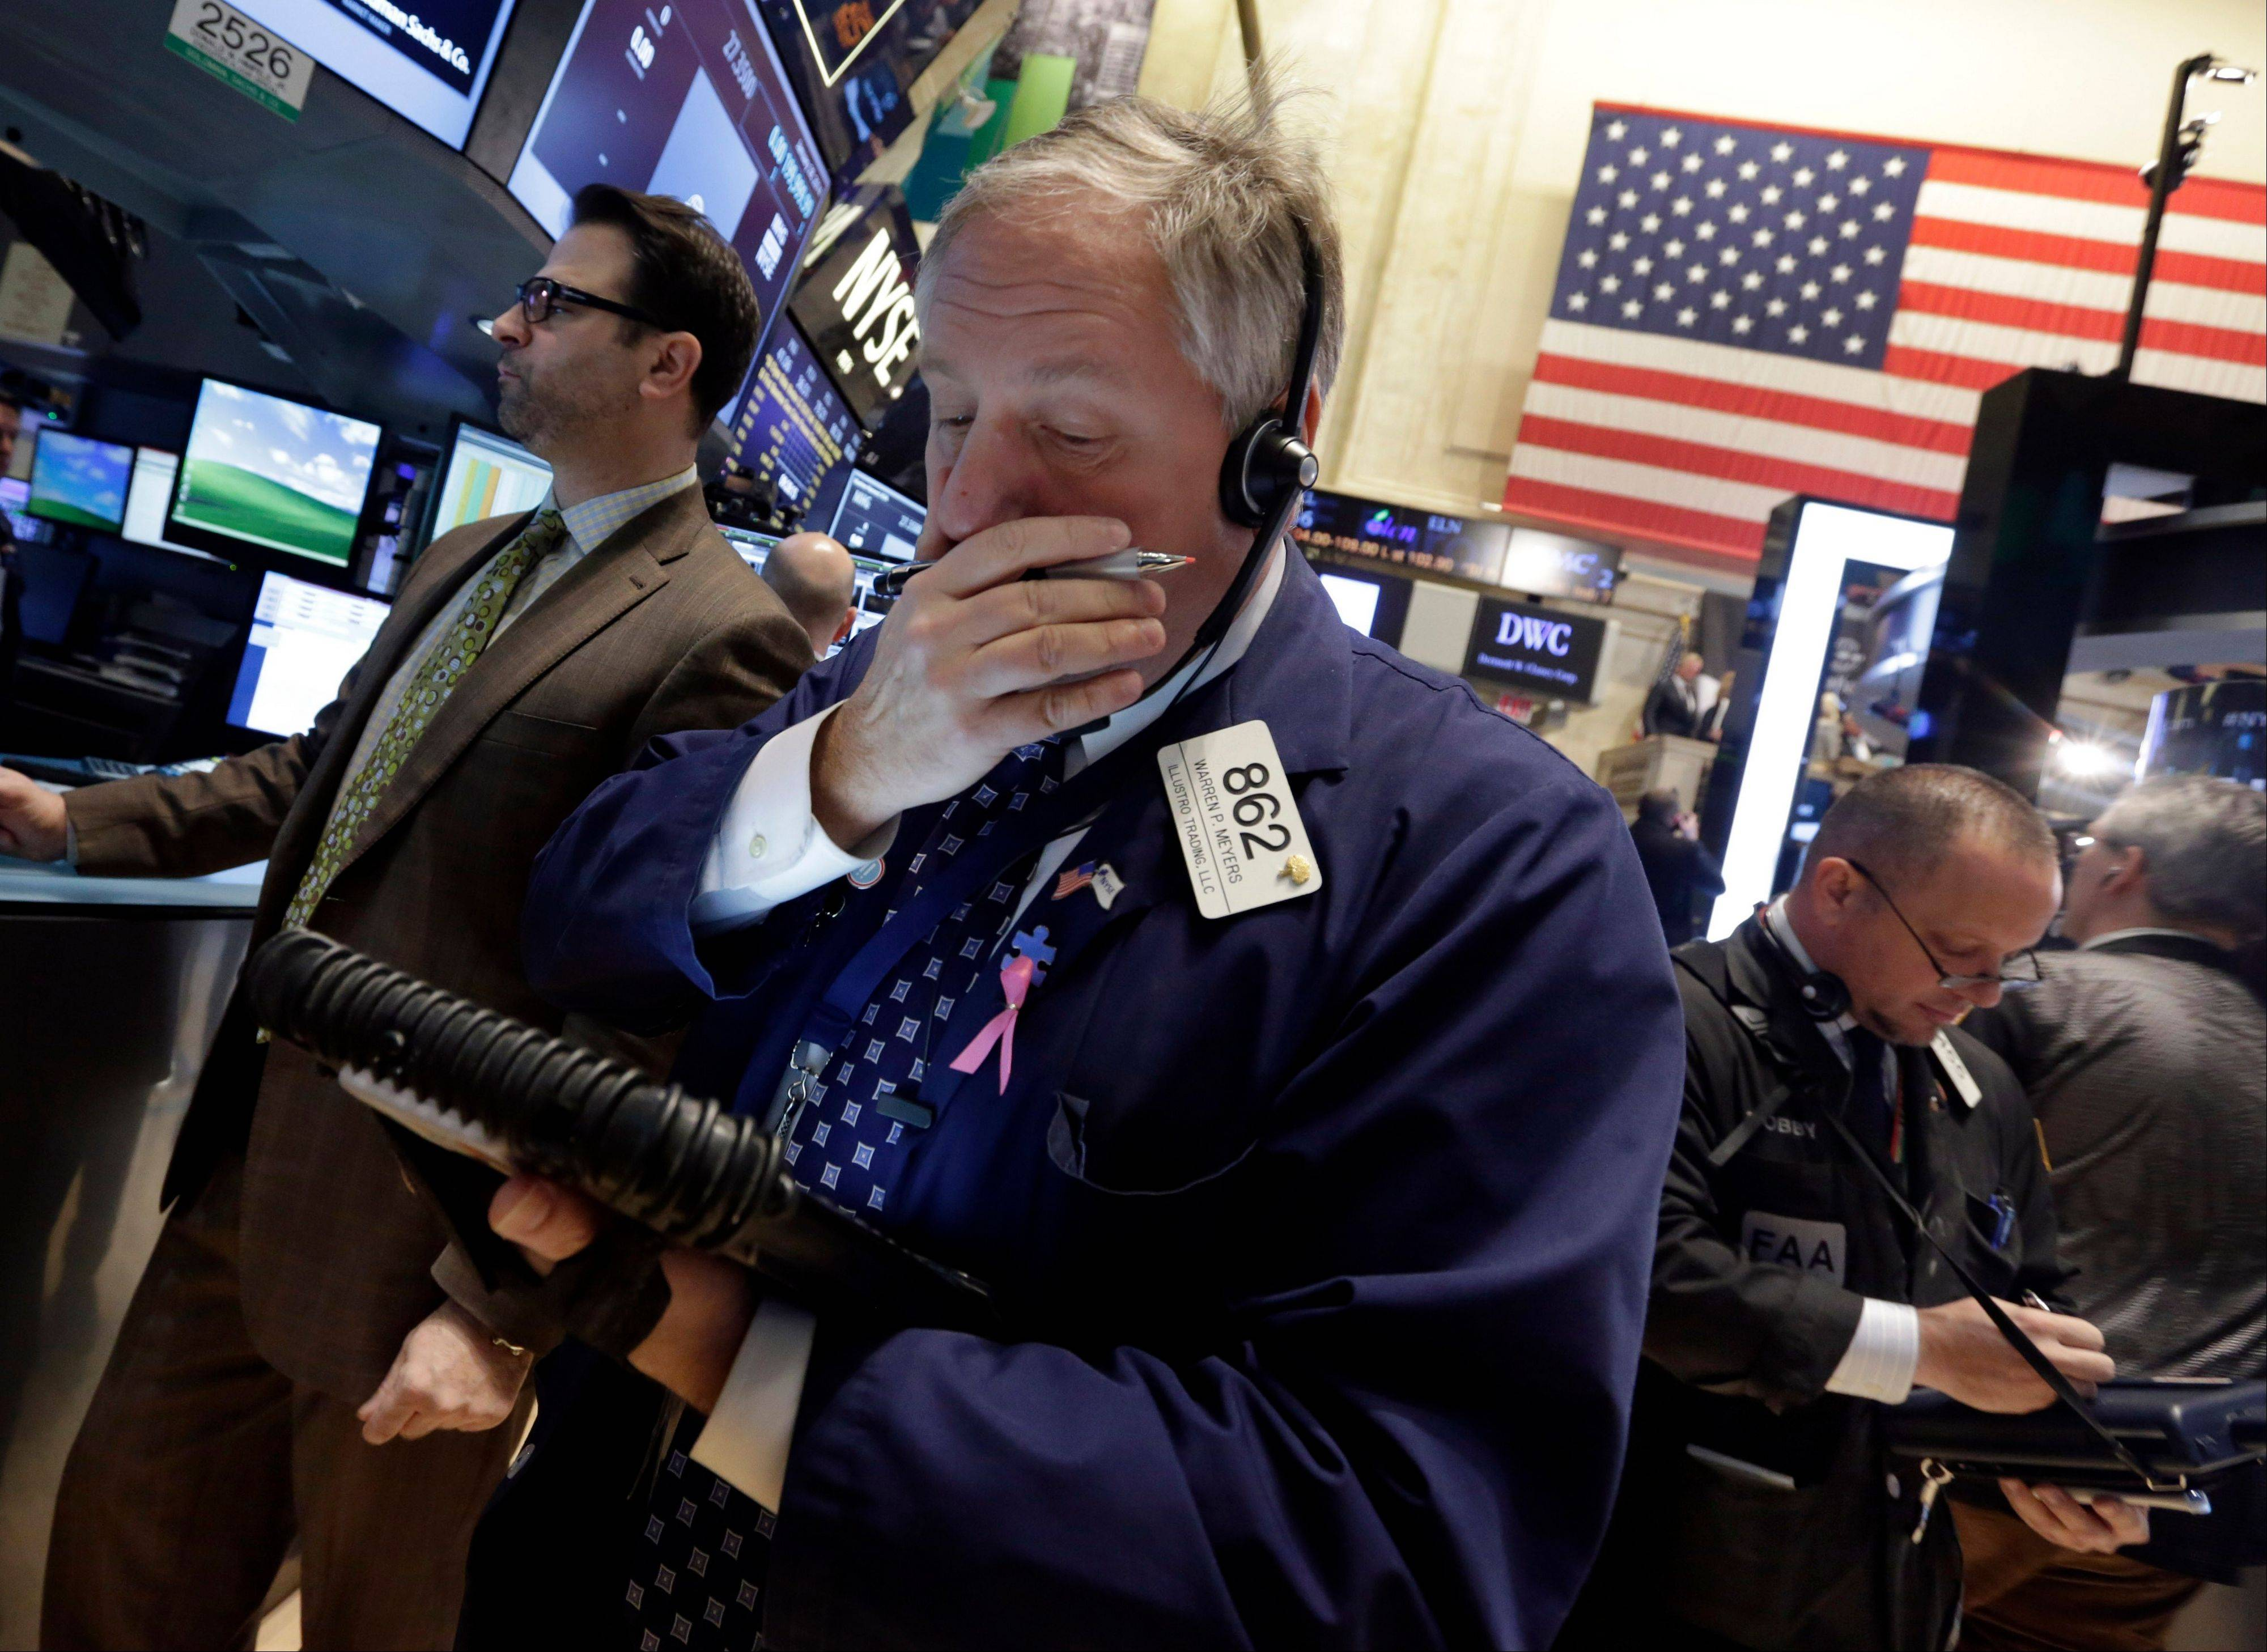 U.S. stocks rose Tuesday, with the Standard & Poor's 500 Index rebounding from its worst slump since June, as earnings at companies from Pfizer Inc. to D.R. Horton Inc. topped estimates and consumer confidence increased ahead of a Federal Reserve policy meeting.